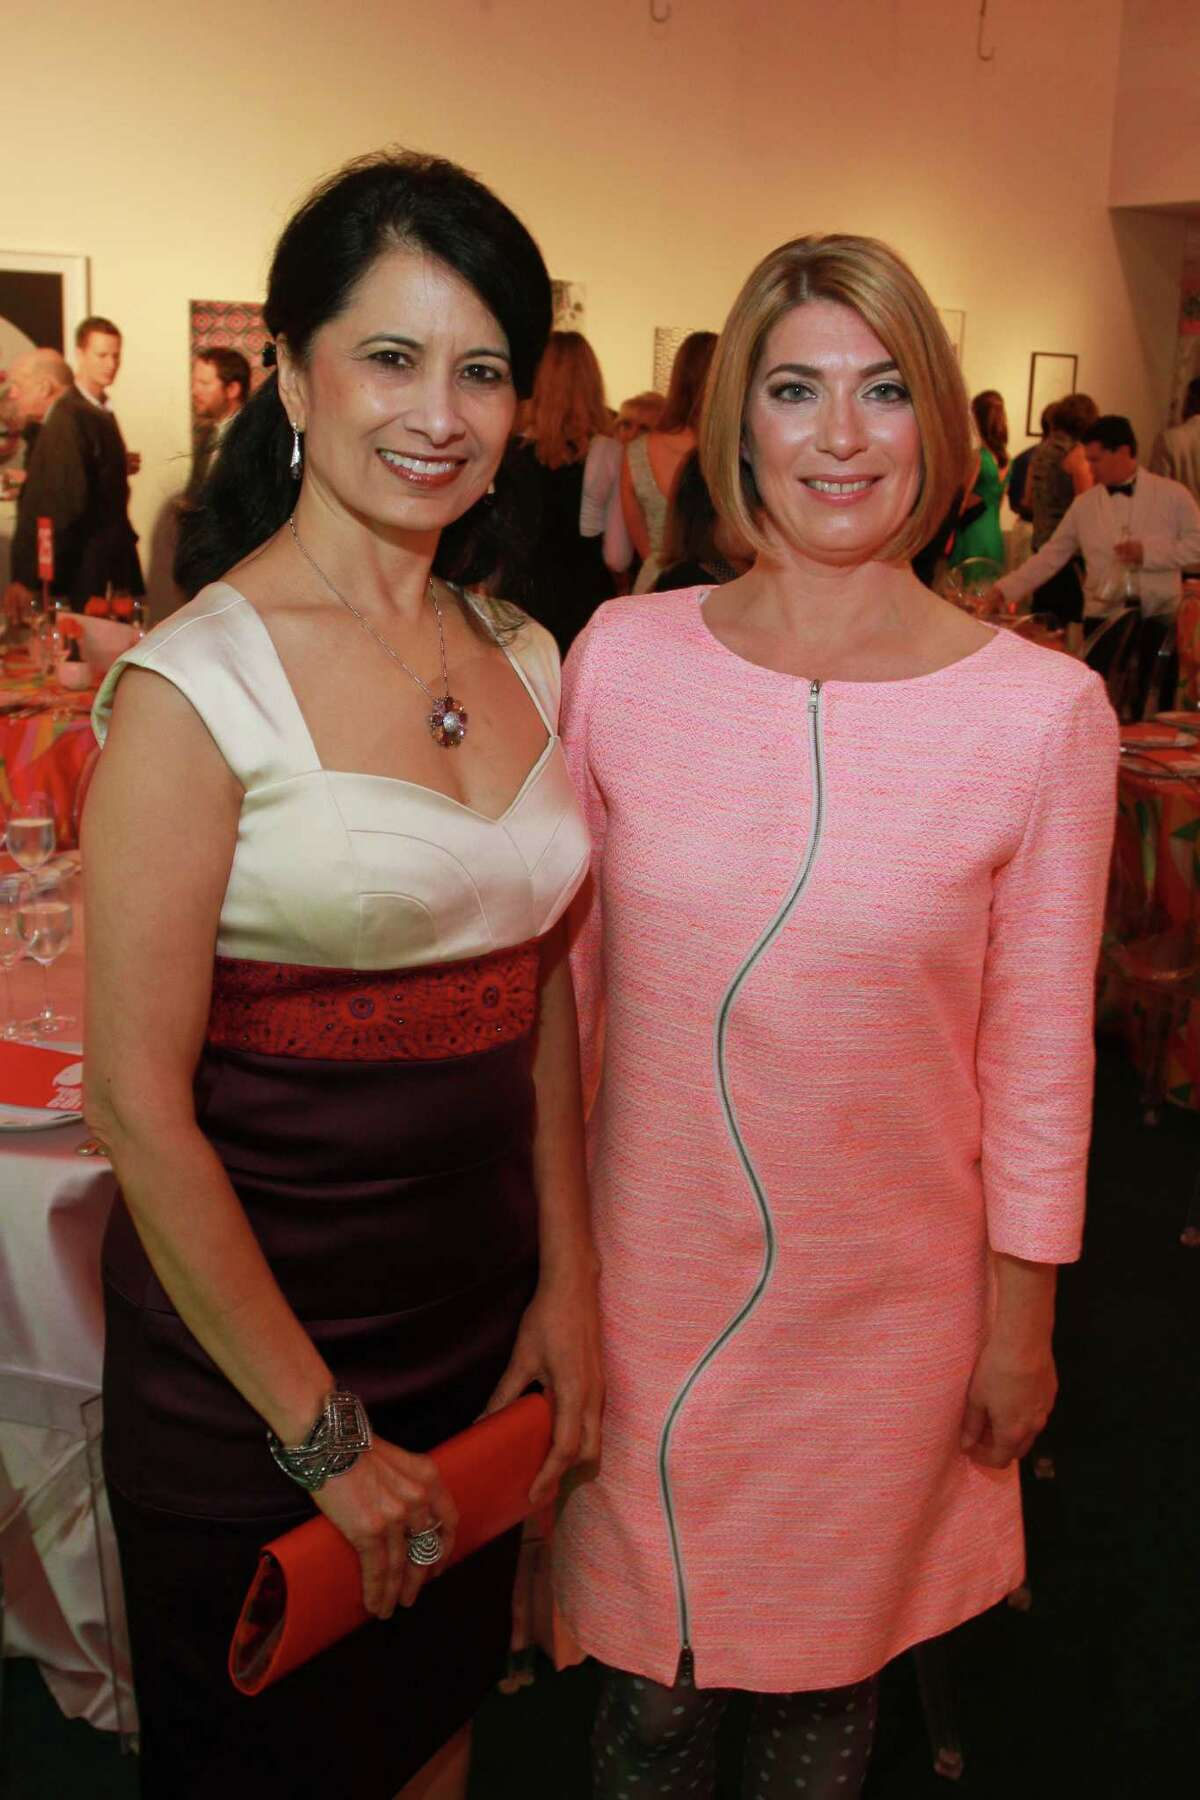 """(For the Chronicle/Gary Fountain, May 16, 2014) University of Houston president Renu Khator, left, and museum director Claudia Schmuckli at the Blaffer Art Museum's """"Nod to Mod"""" gala."""